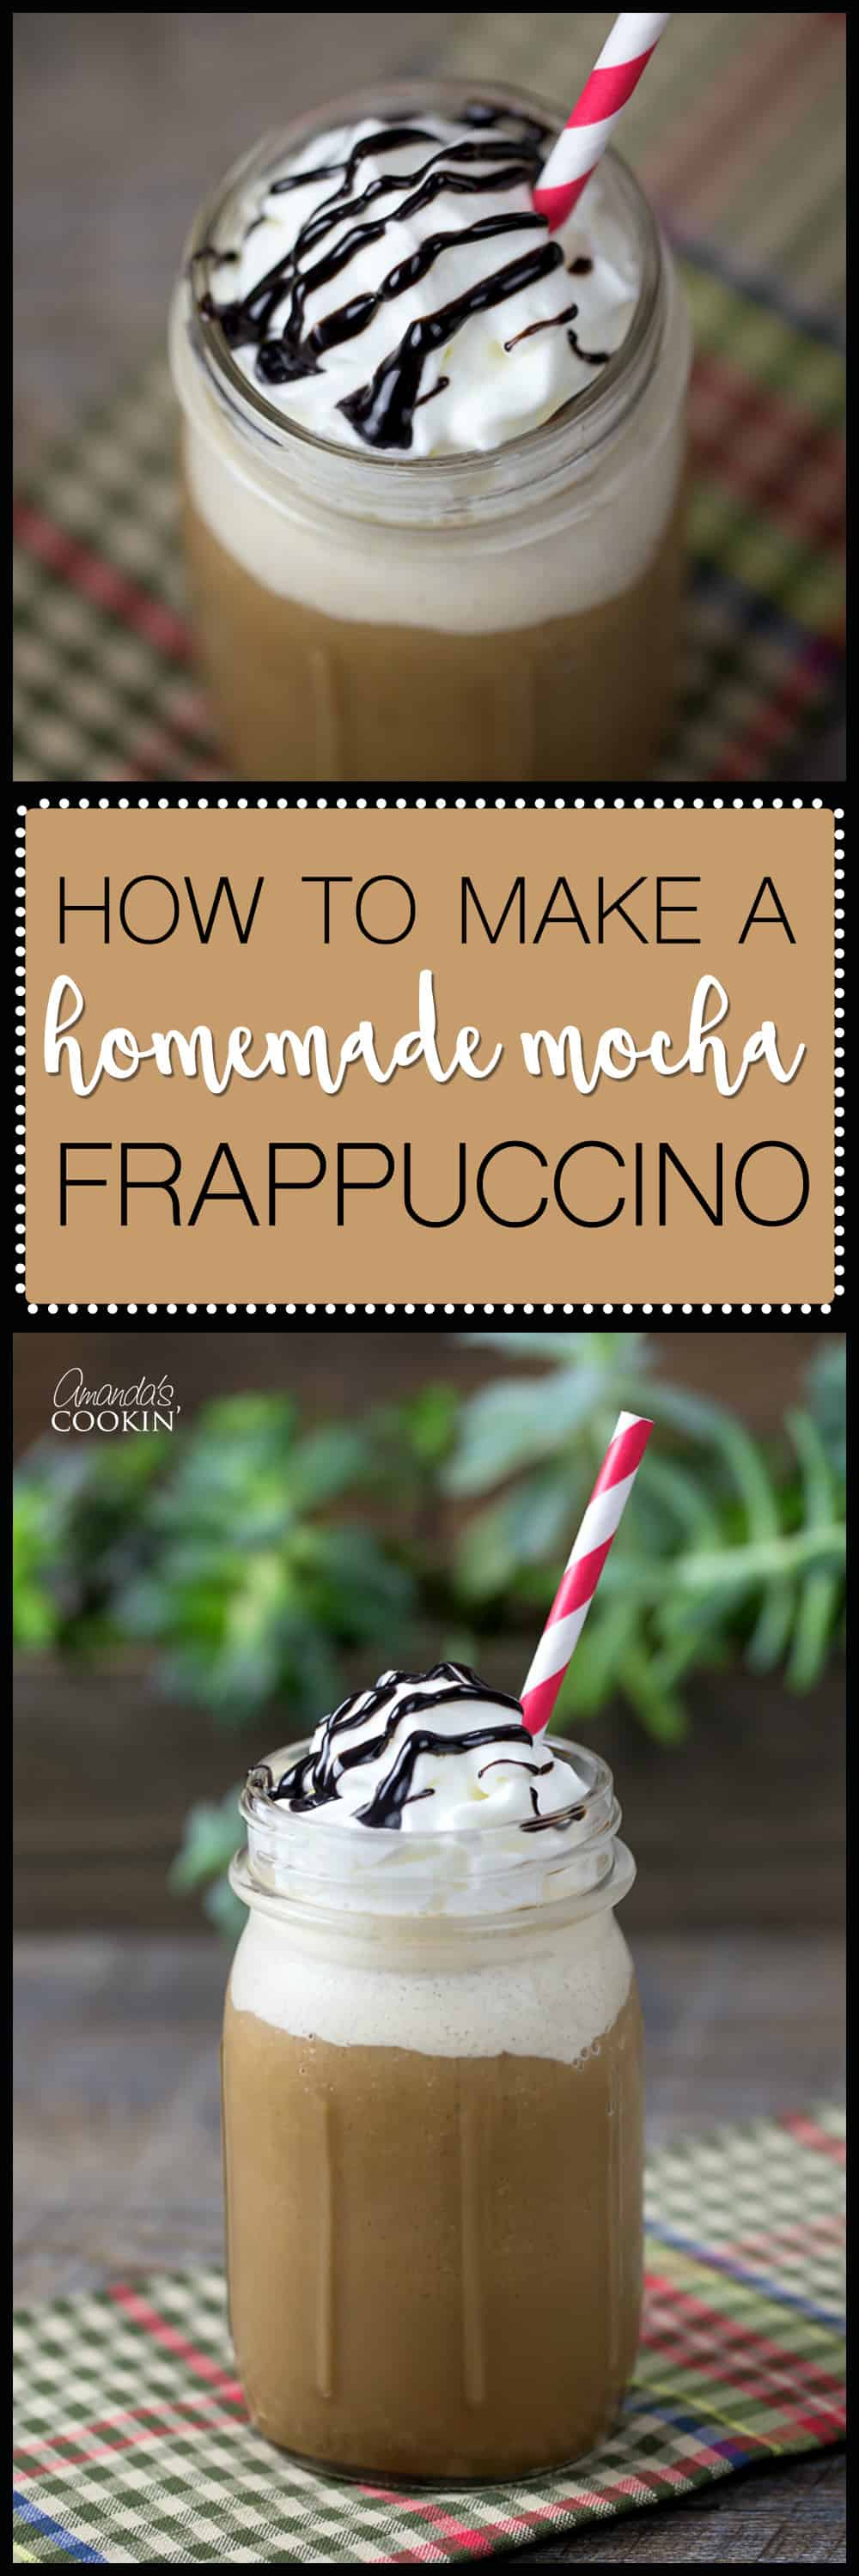 If you like Starbucks blended drinks, you will love this homemade mocha frappuccino! Full